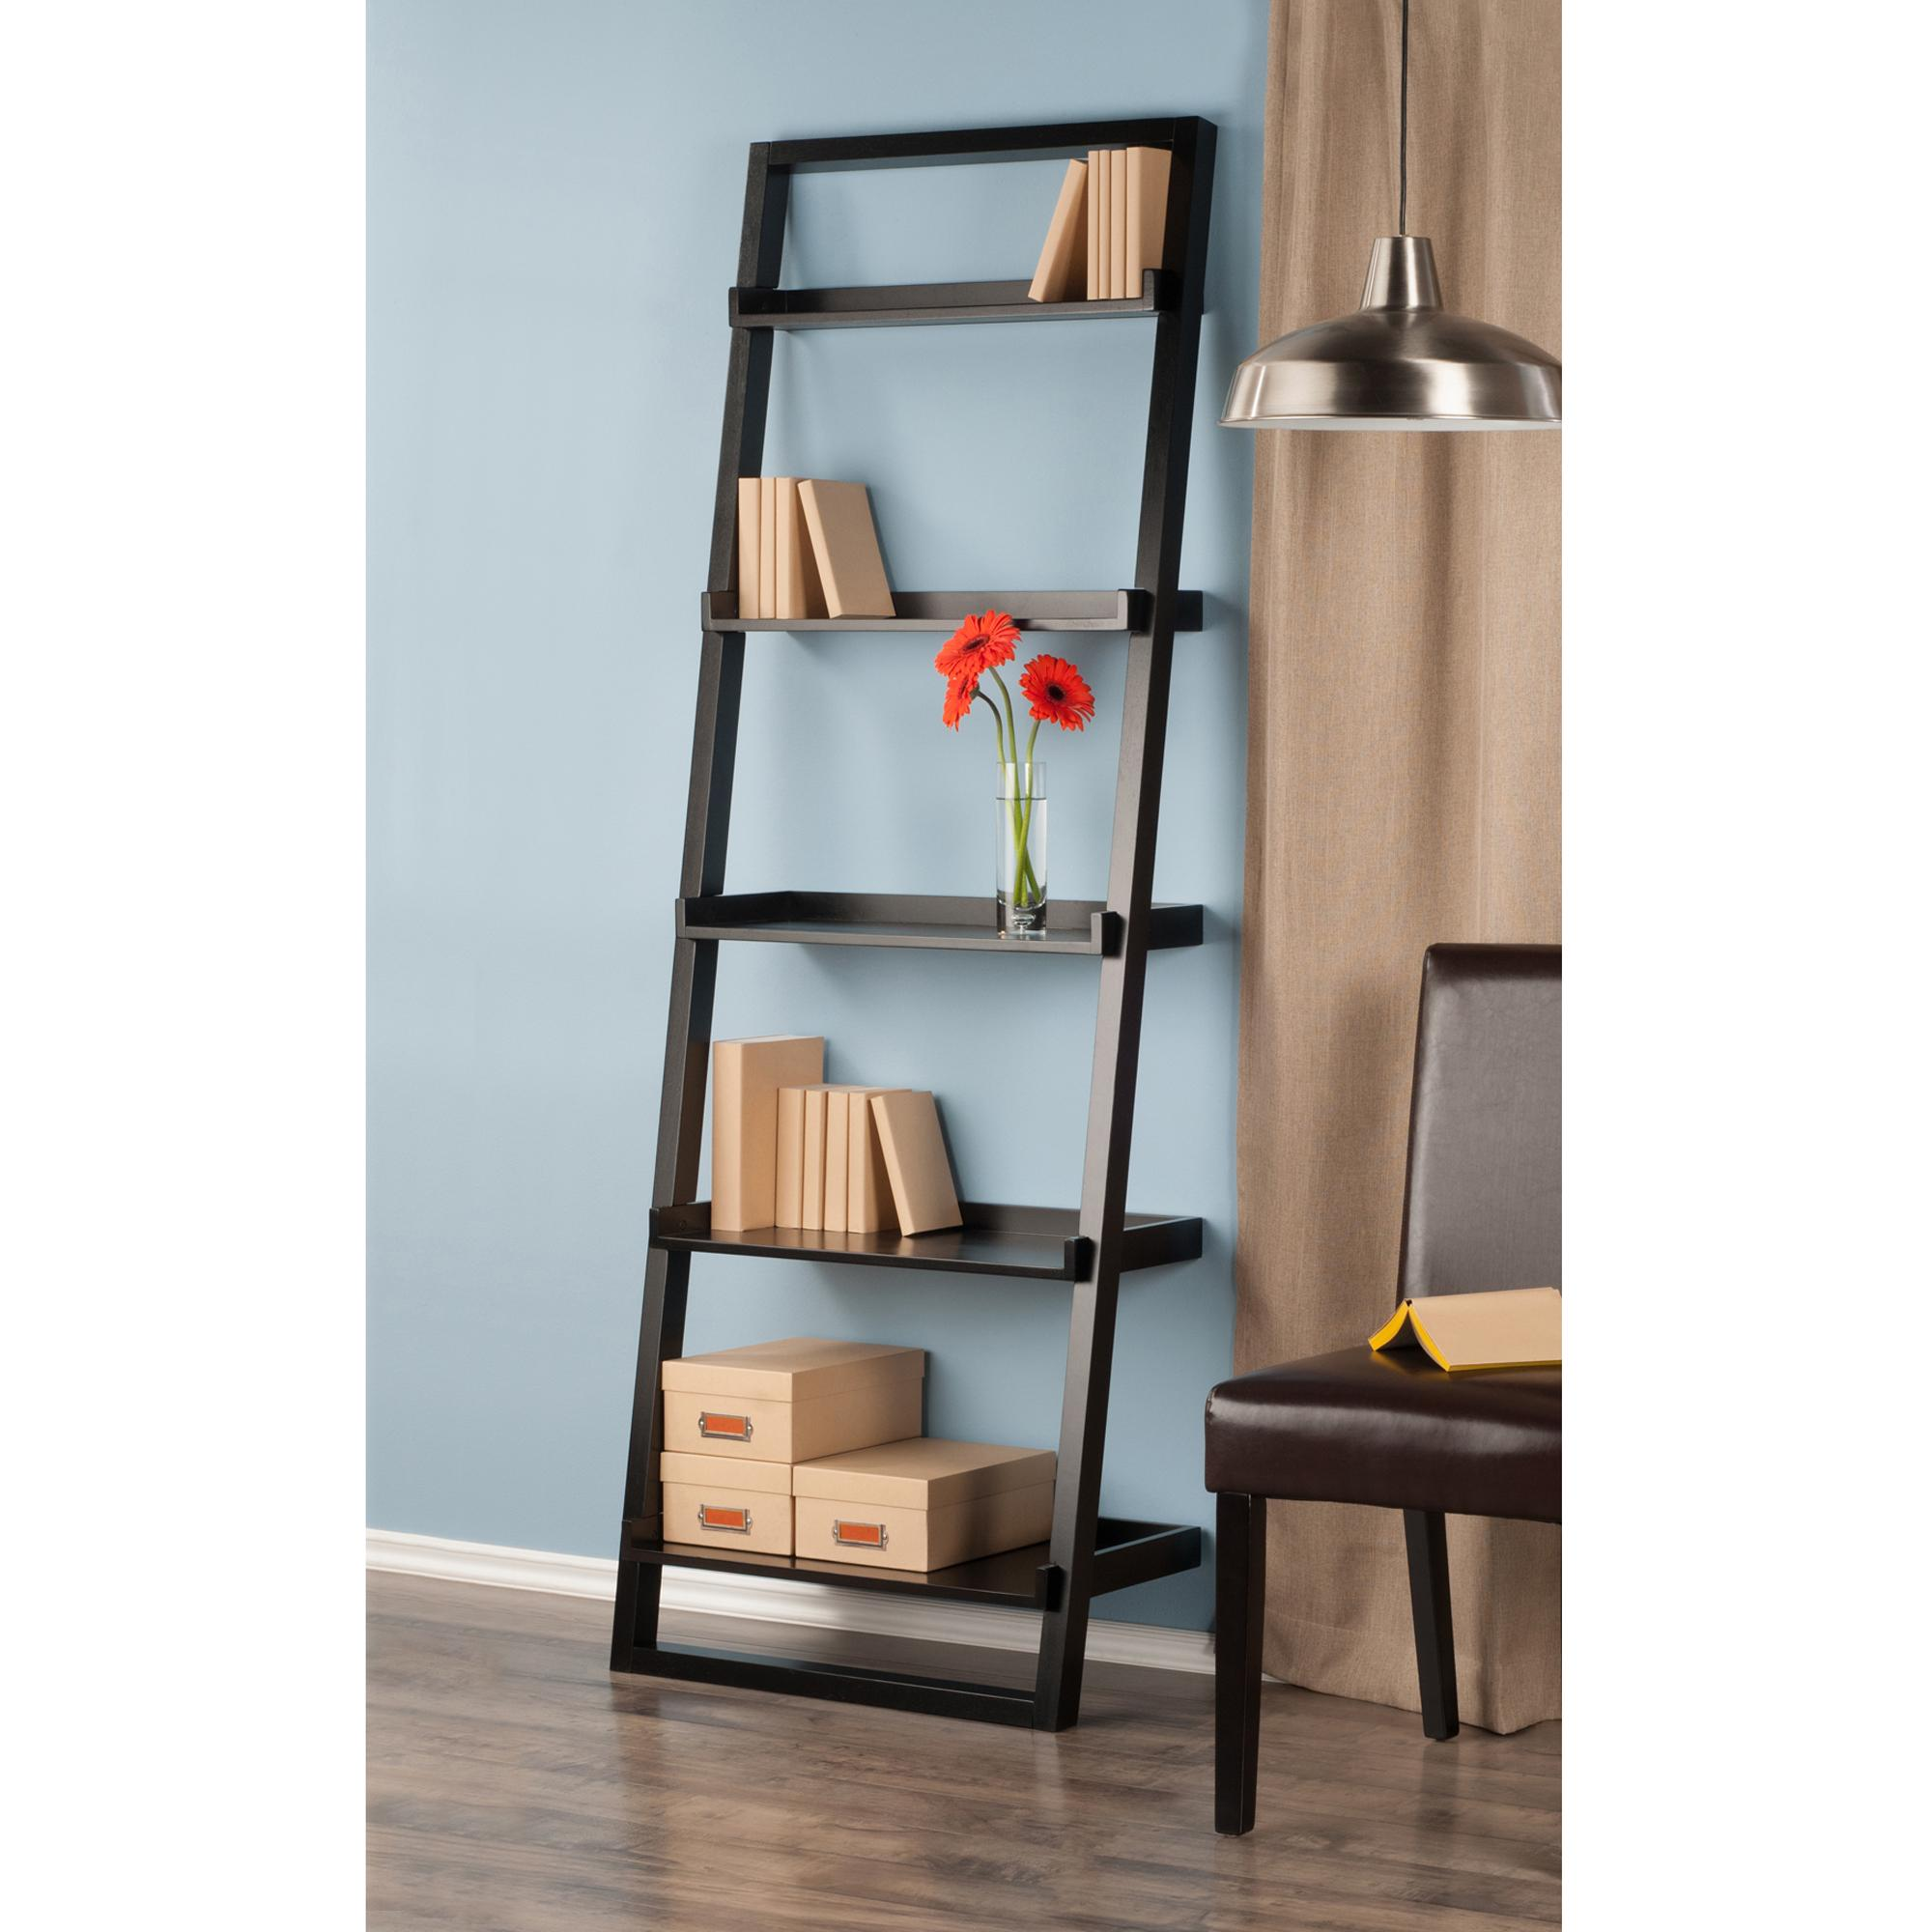 Kitchen Shelf Amazon: Amazon.com: Winsome Wood Bailey Leaning 5-Tier Shelving